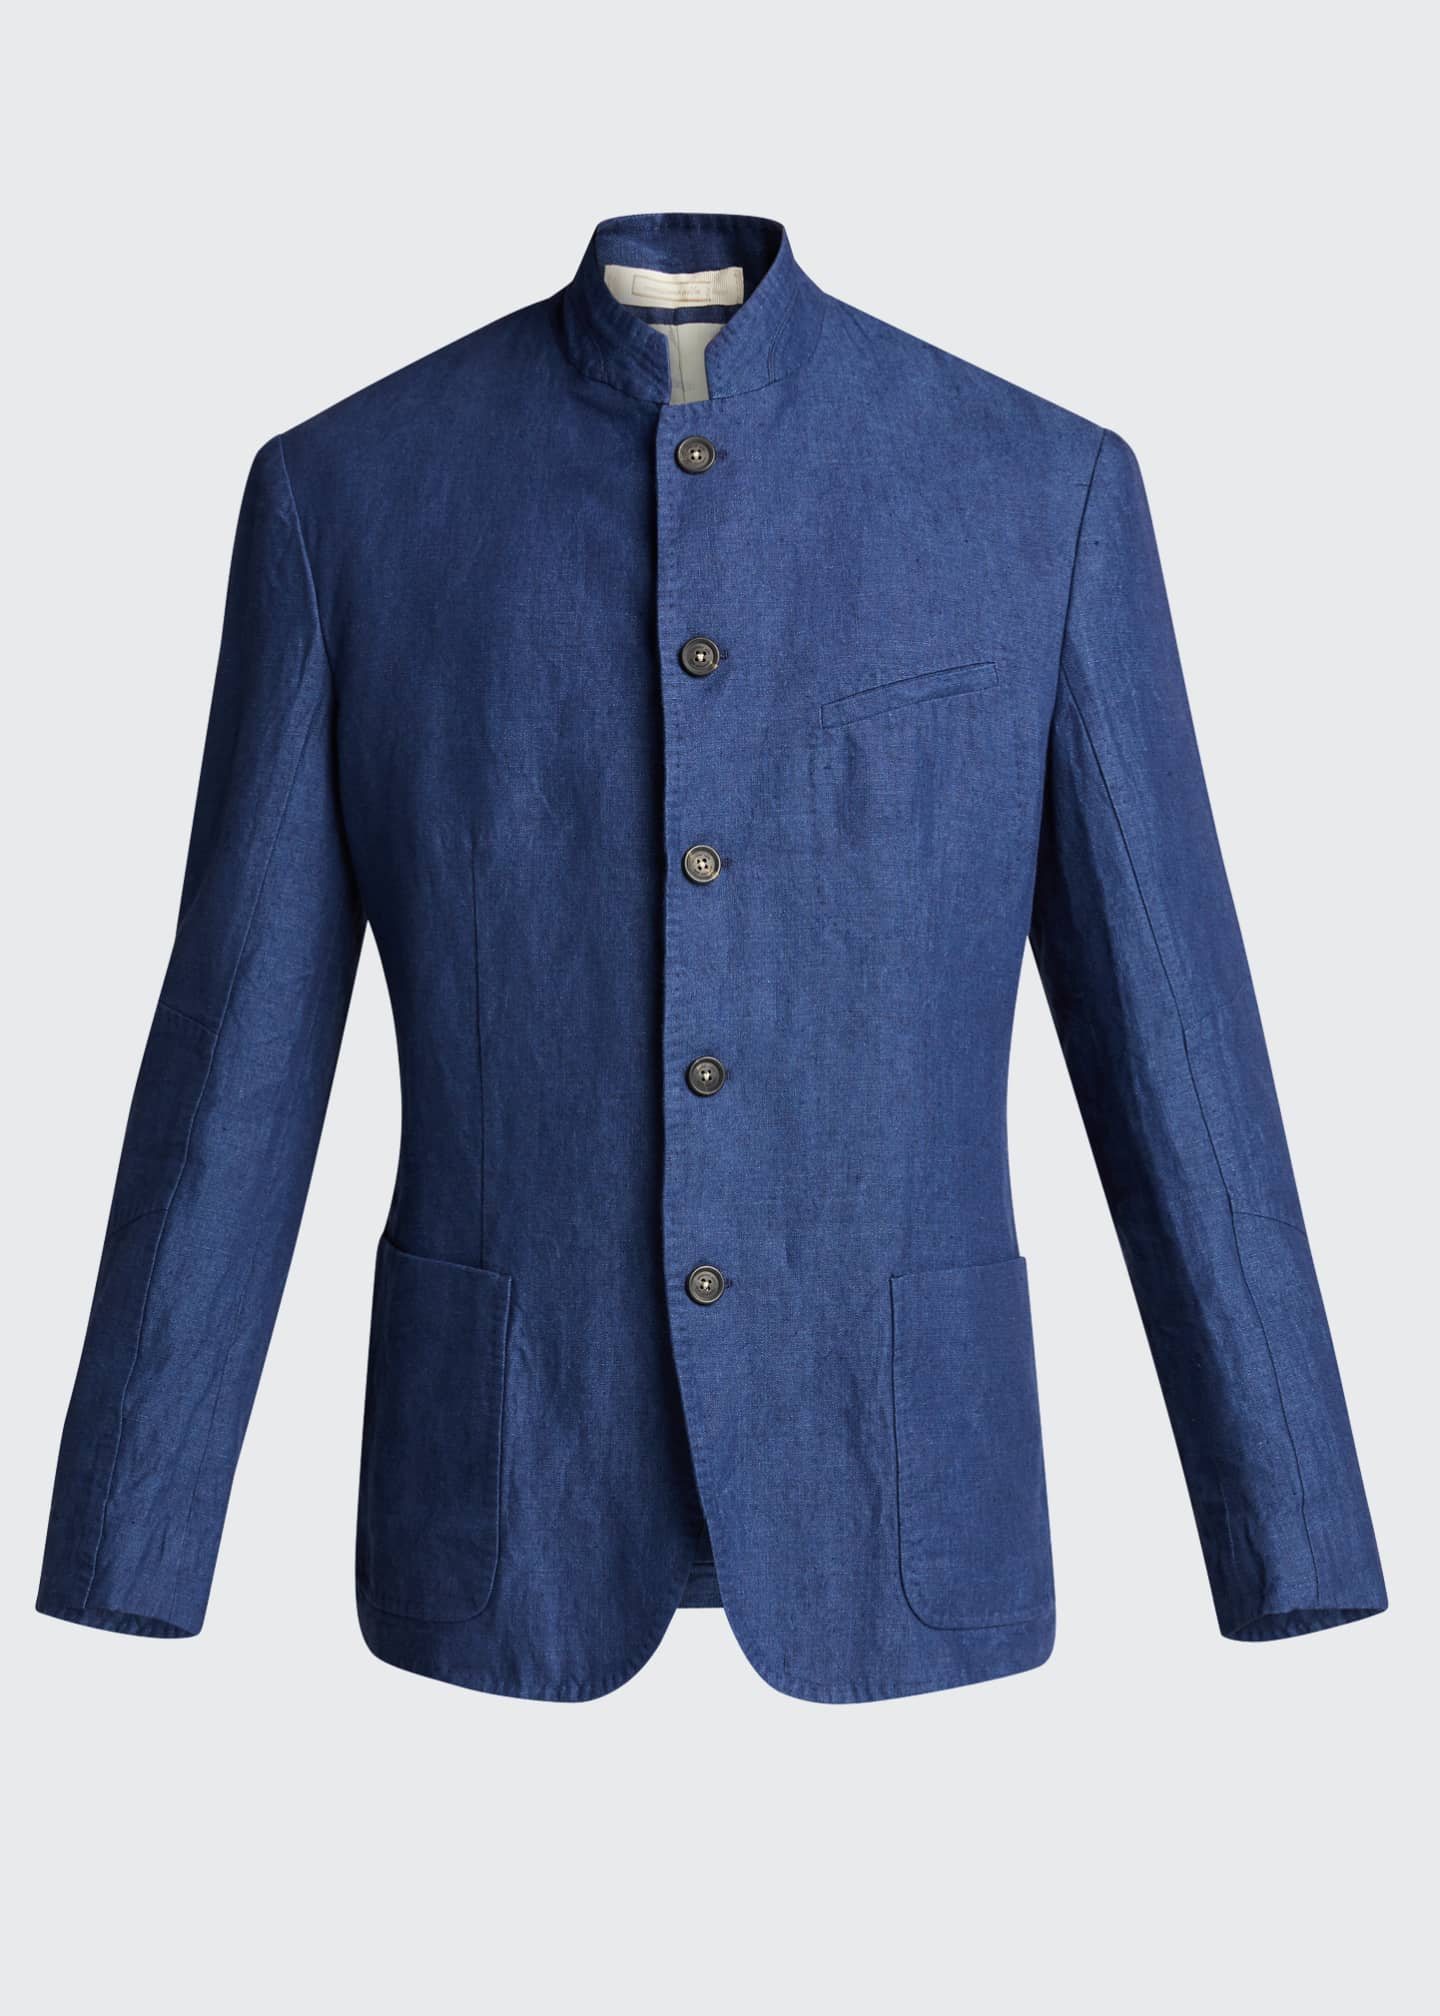 Image 5 of 5: Men's Solid Linen Jacket